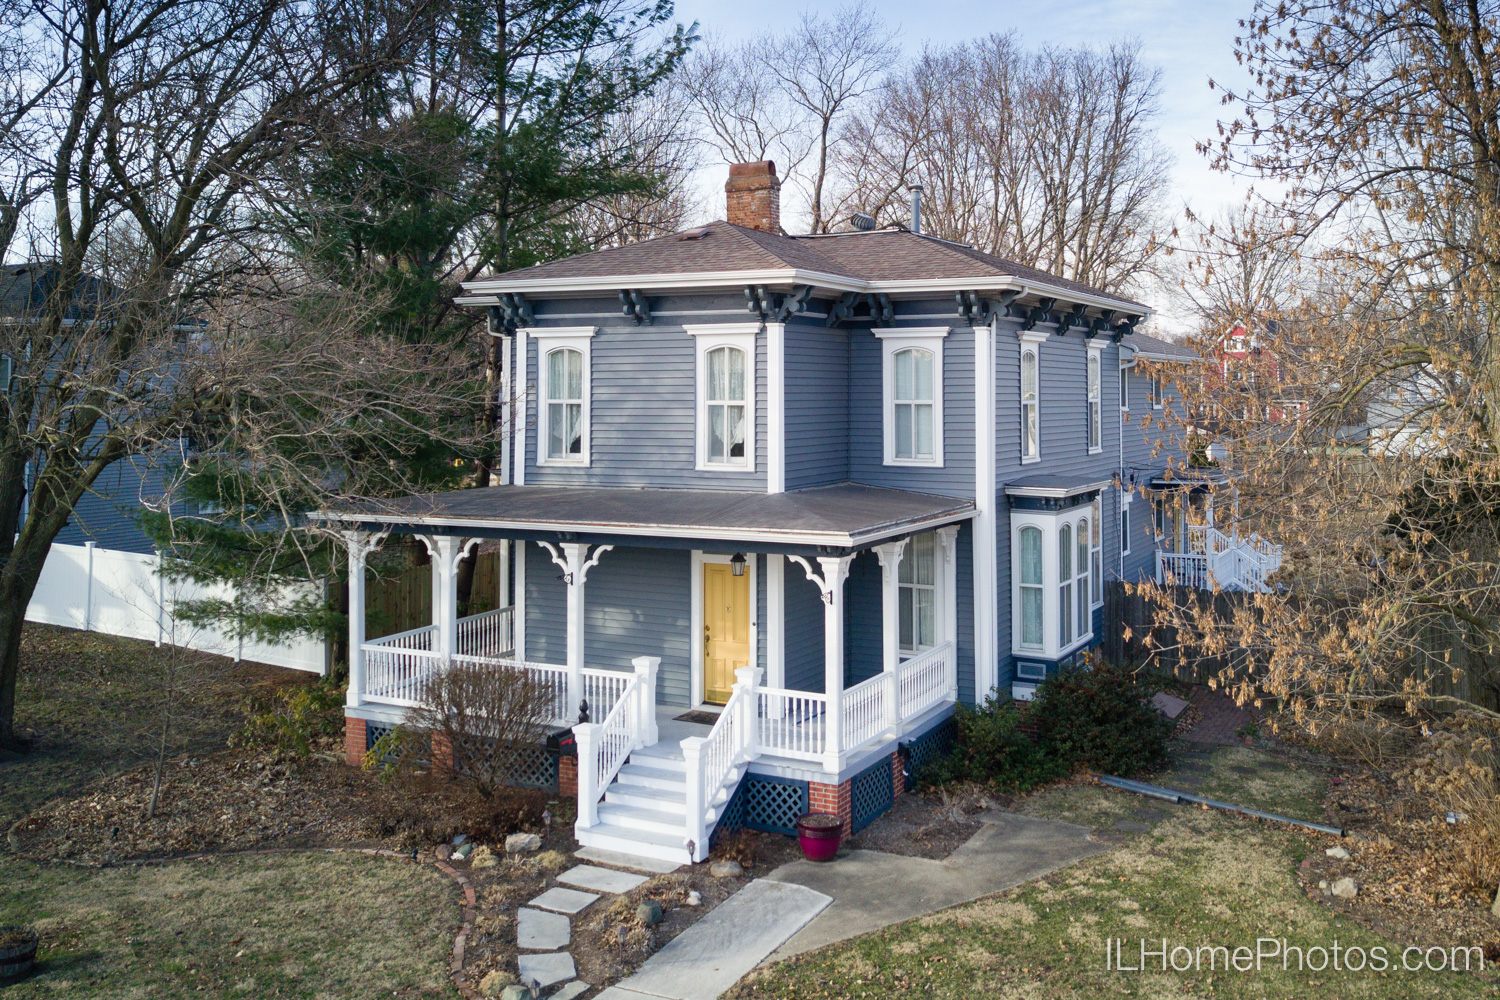 Home exterior photographed with a drone :: Illinois Home Photography, Lincoln, IL // Michael Gowin